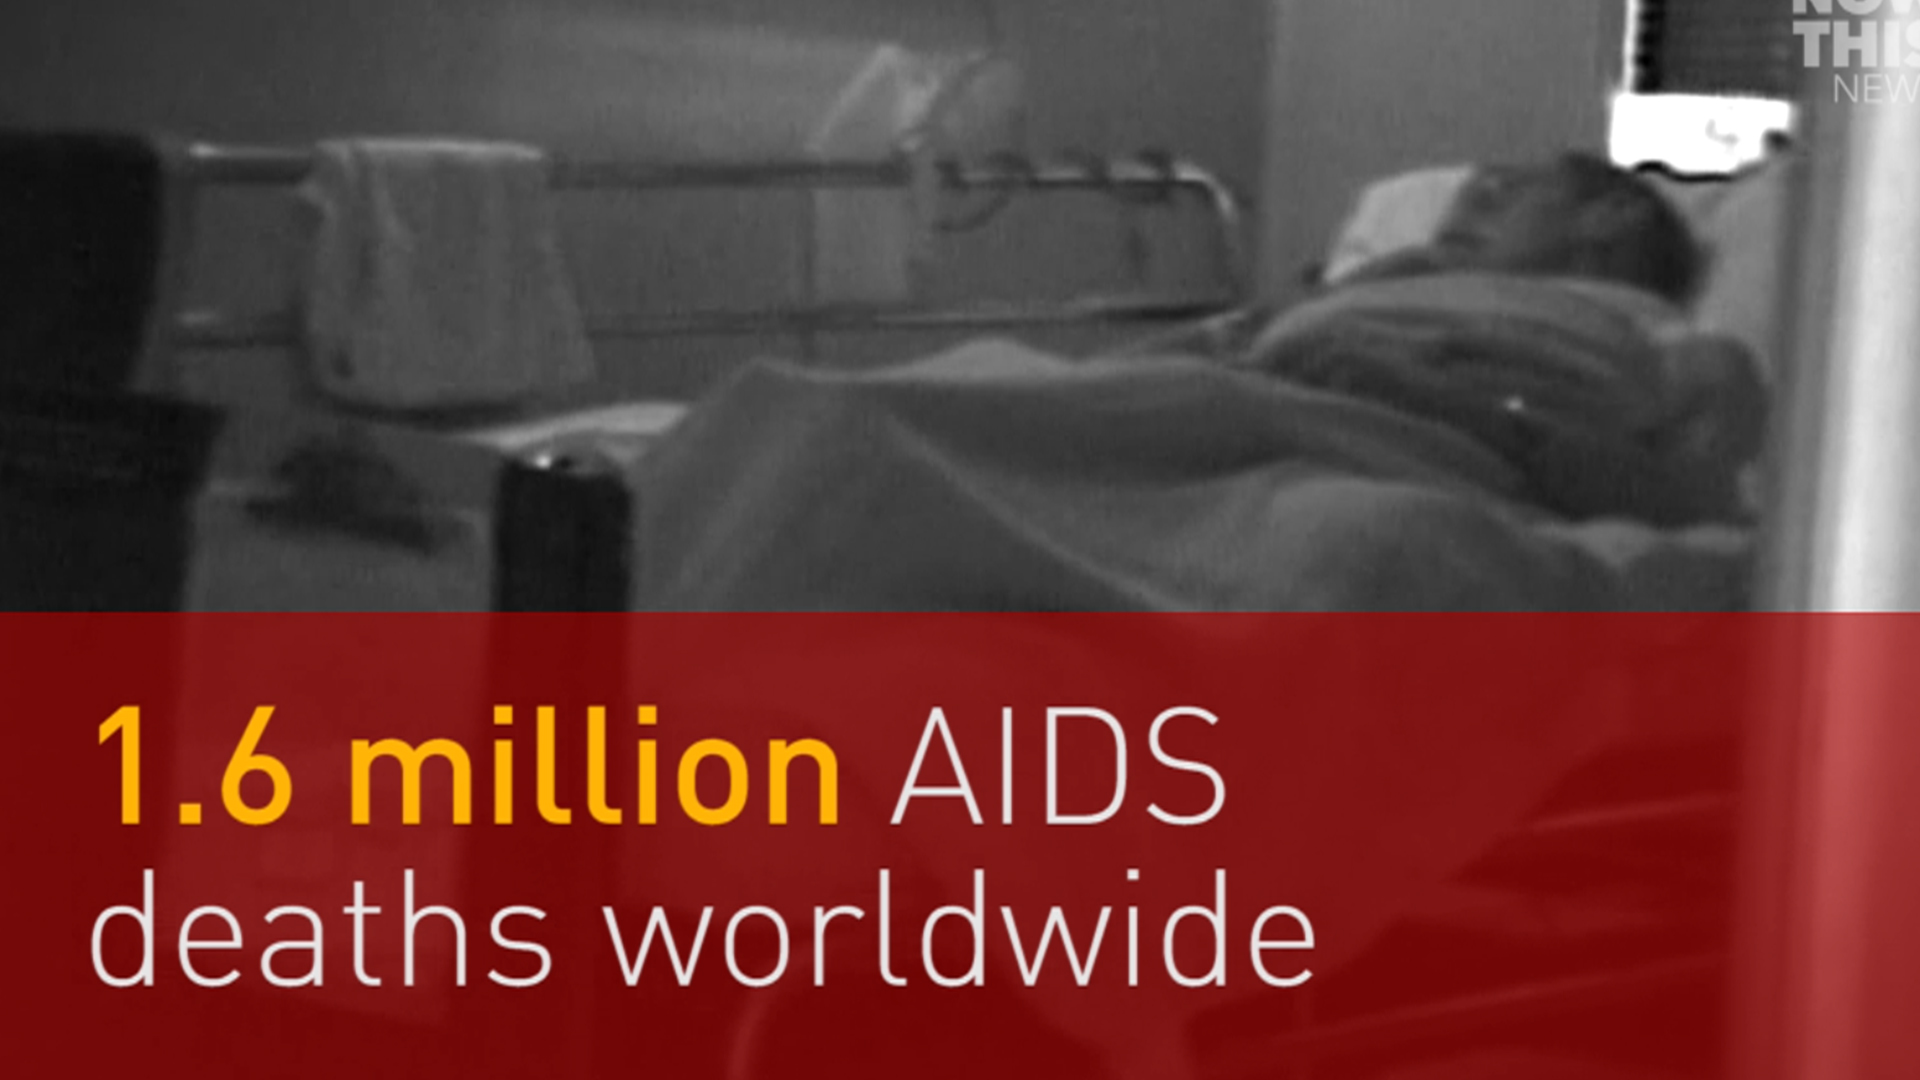 The HIV/AIDS crisis by the numbers